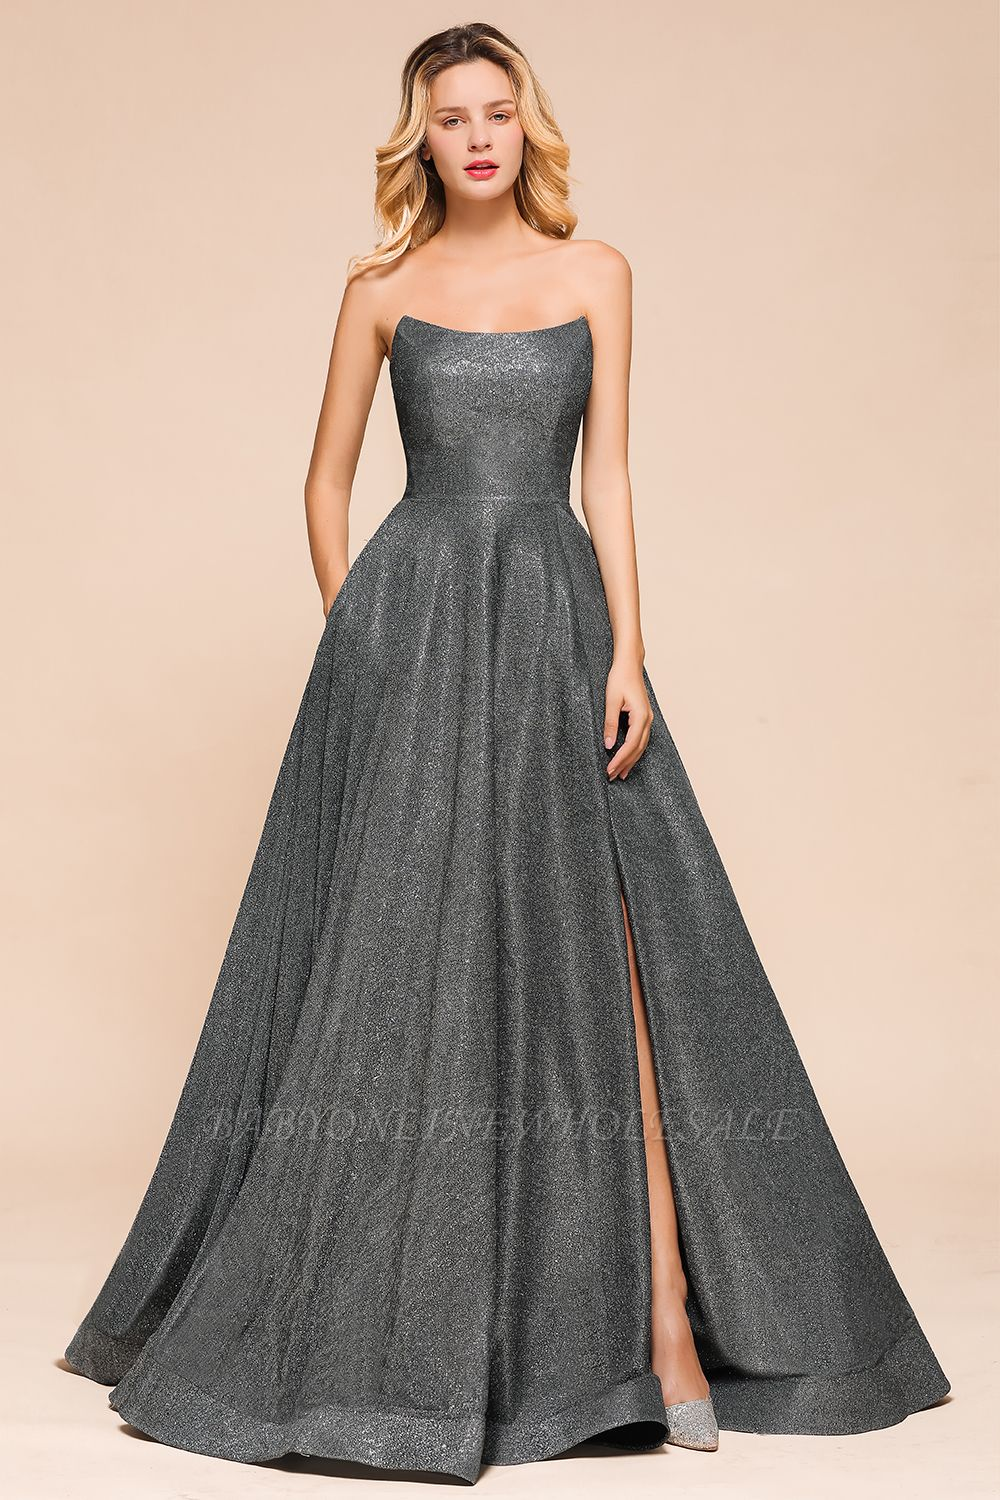 April | Strapless A-line High Slit Gray Shiny Sequined Prom Dress